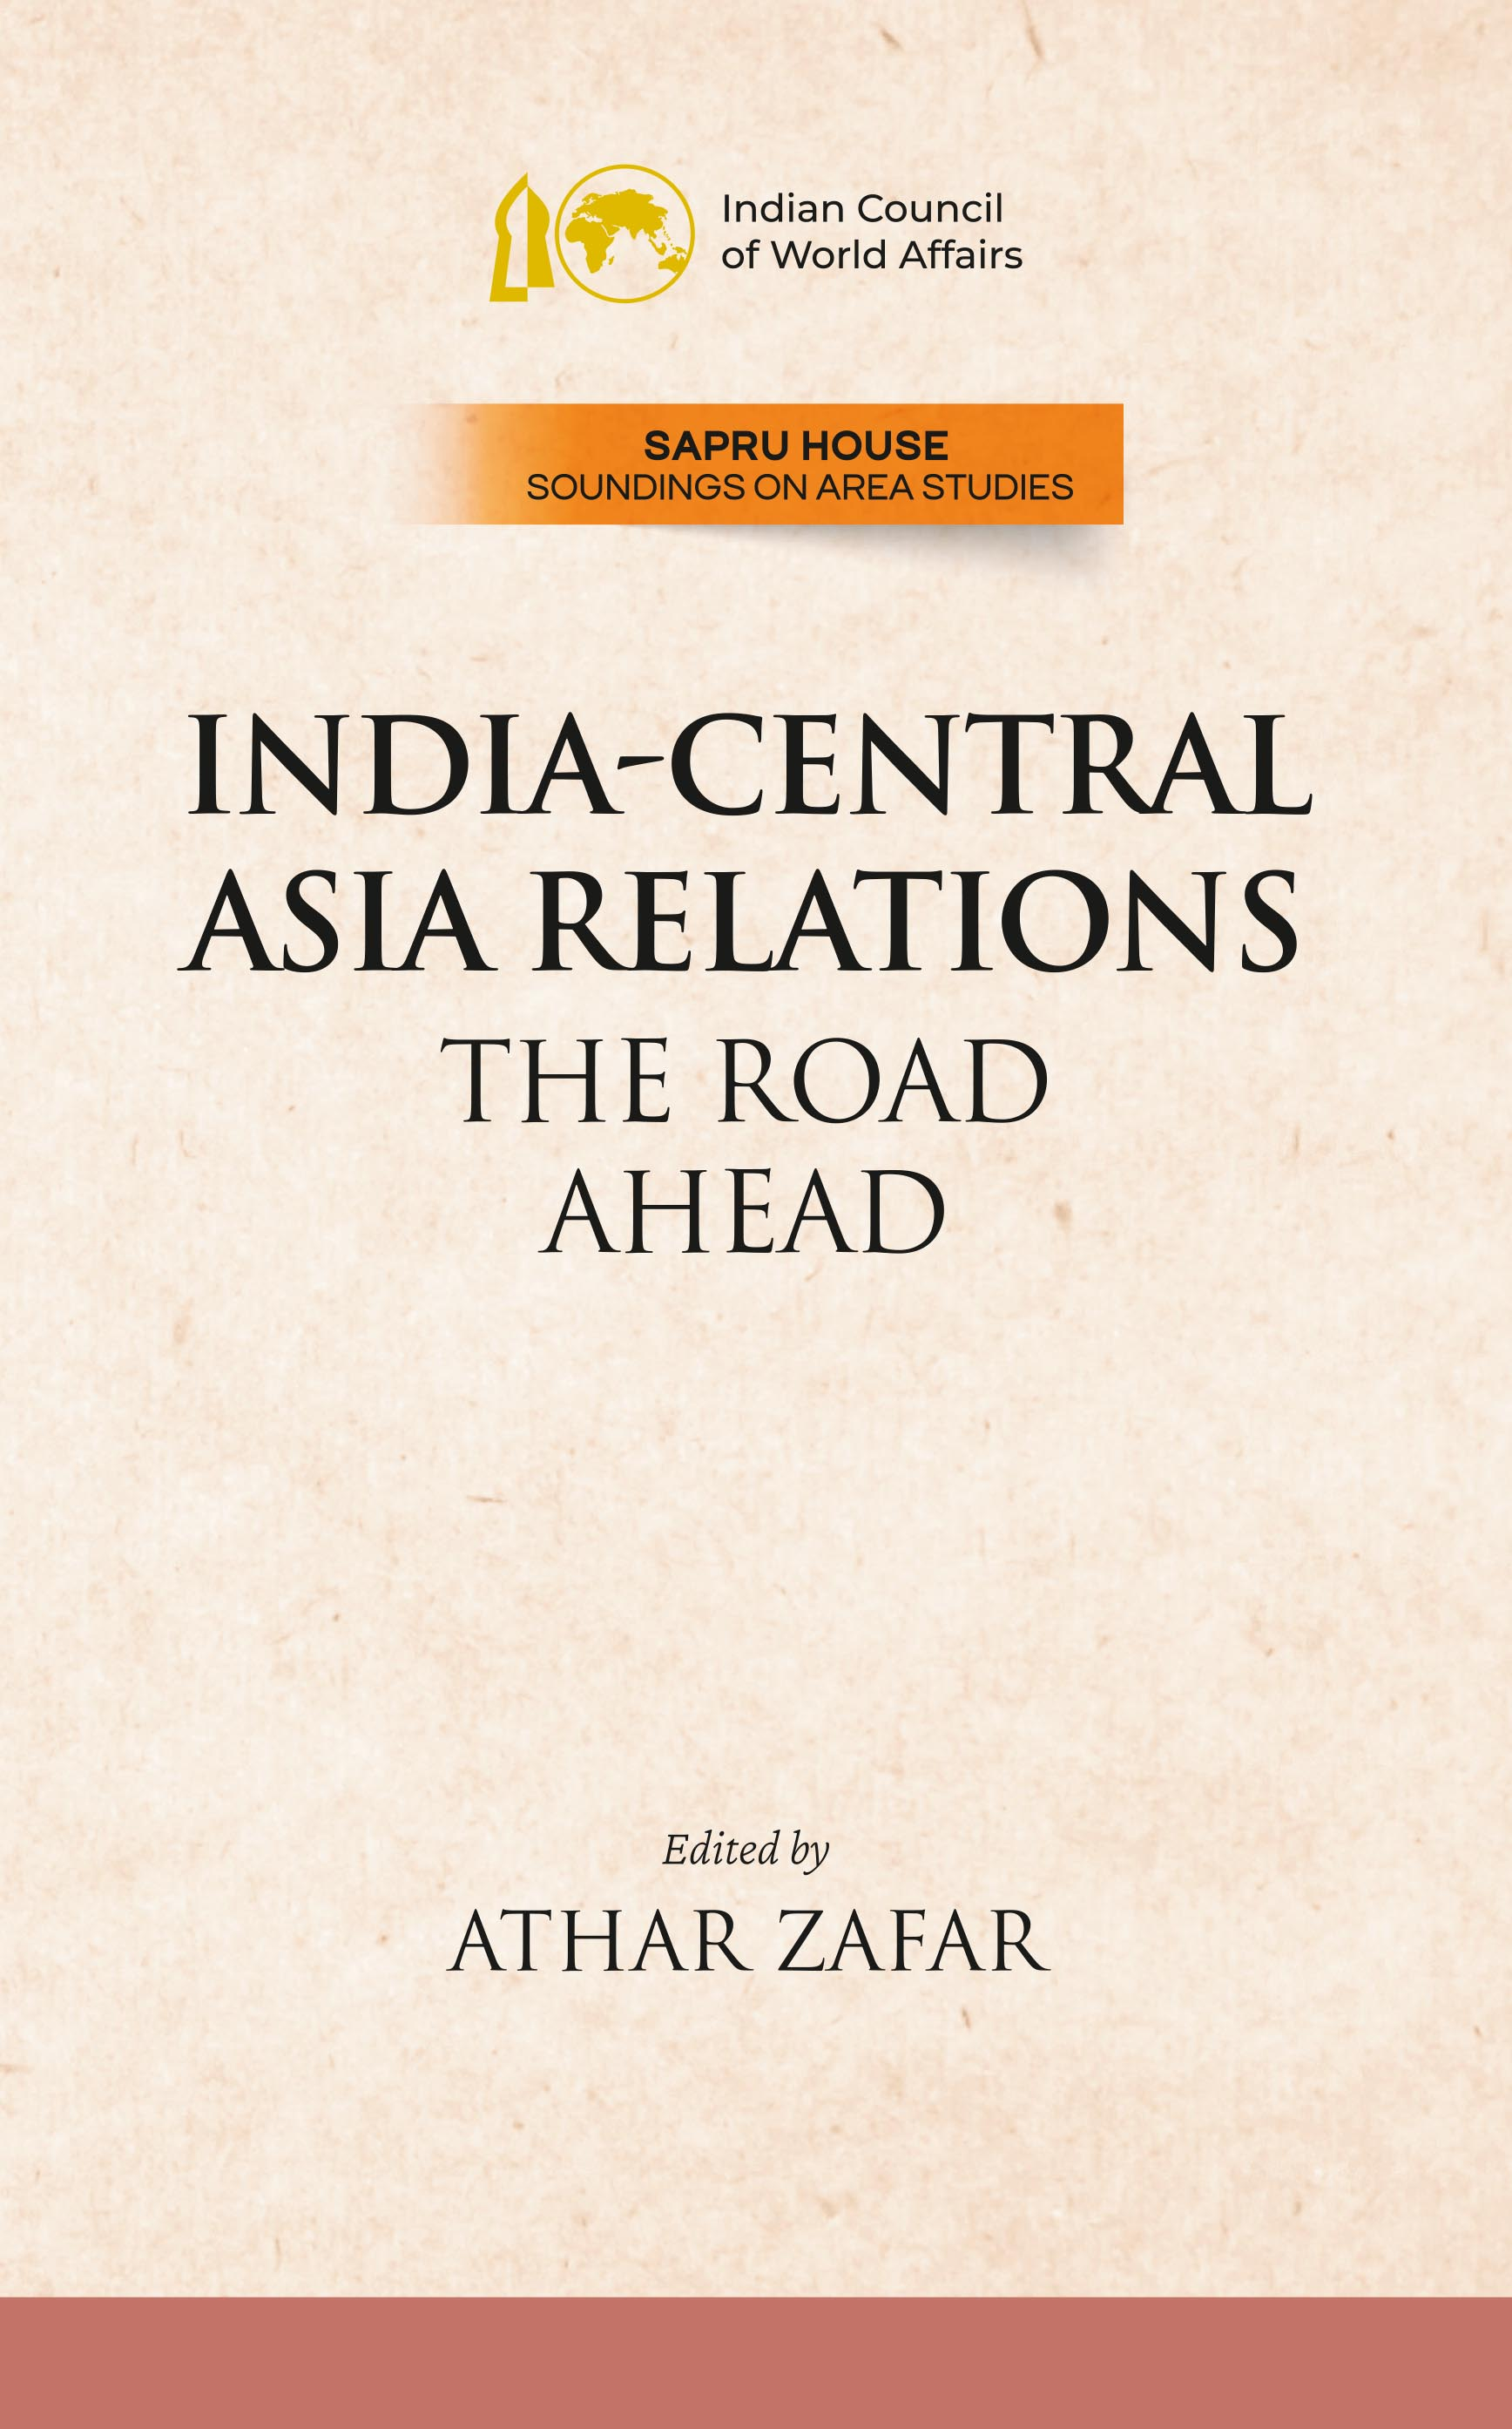 India-Central Asia Relations: The Road Ahead